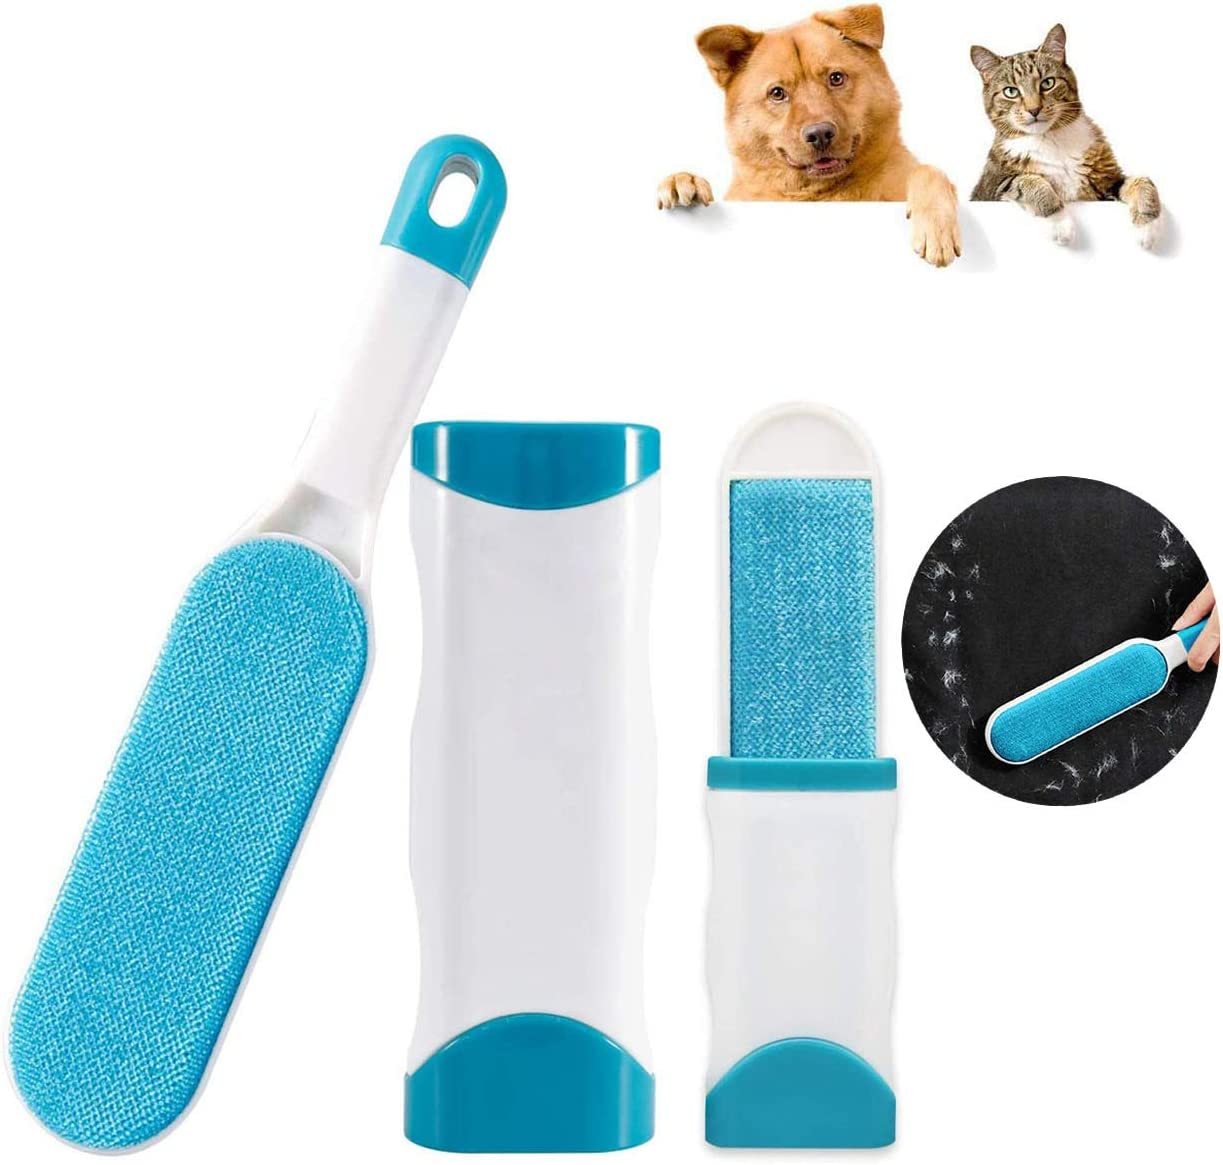 Portable Hair Remover JZH,Dog Hair Removal for Furniture, Hair Removal Brush,Clothes Removal Brush No Refills and No Waste Pet Hair Quick epilator Upgraded Reusable Pet Hair Remover Brush-1 Pack